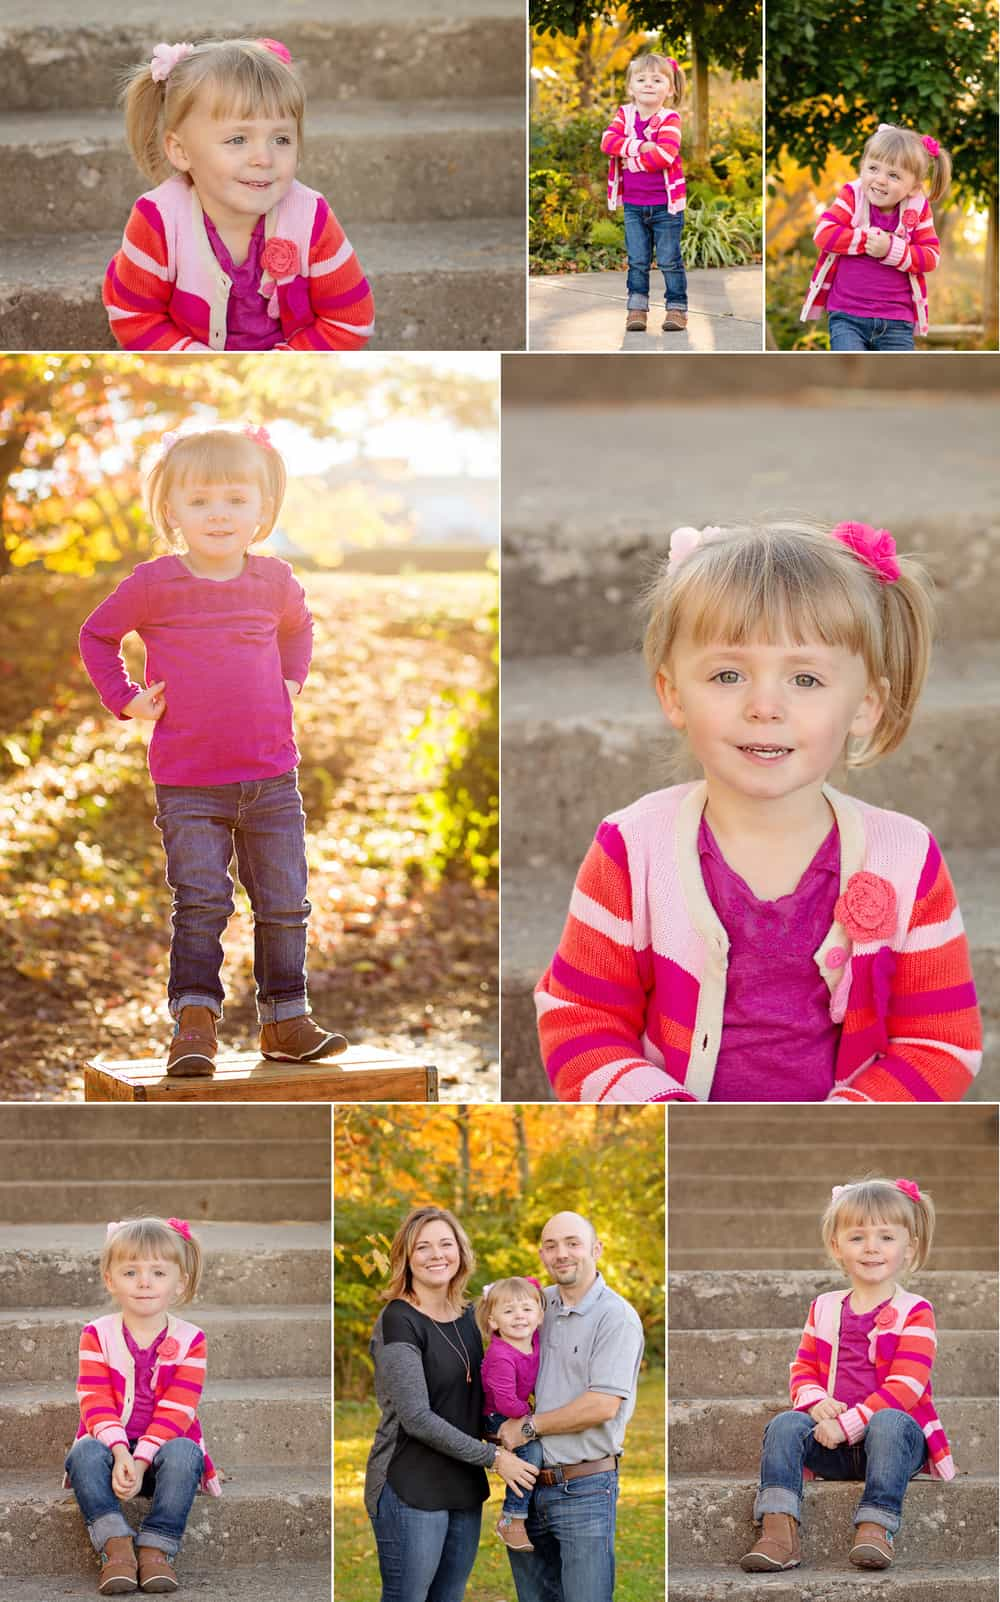 Sinchek Photography family session at Ault Park